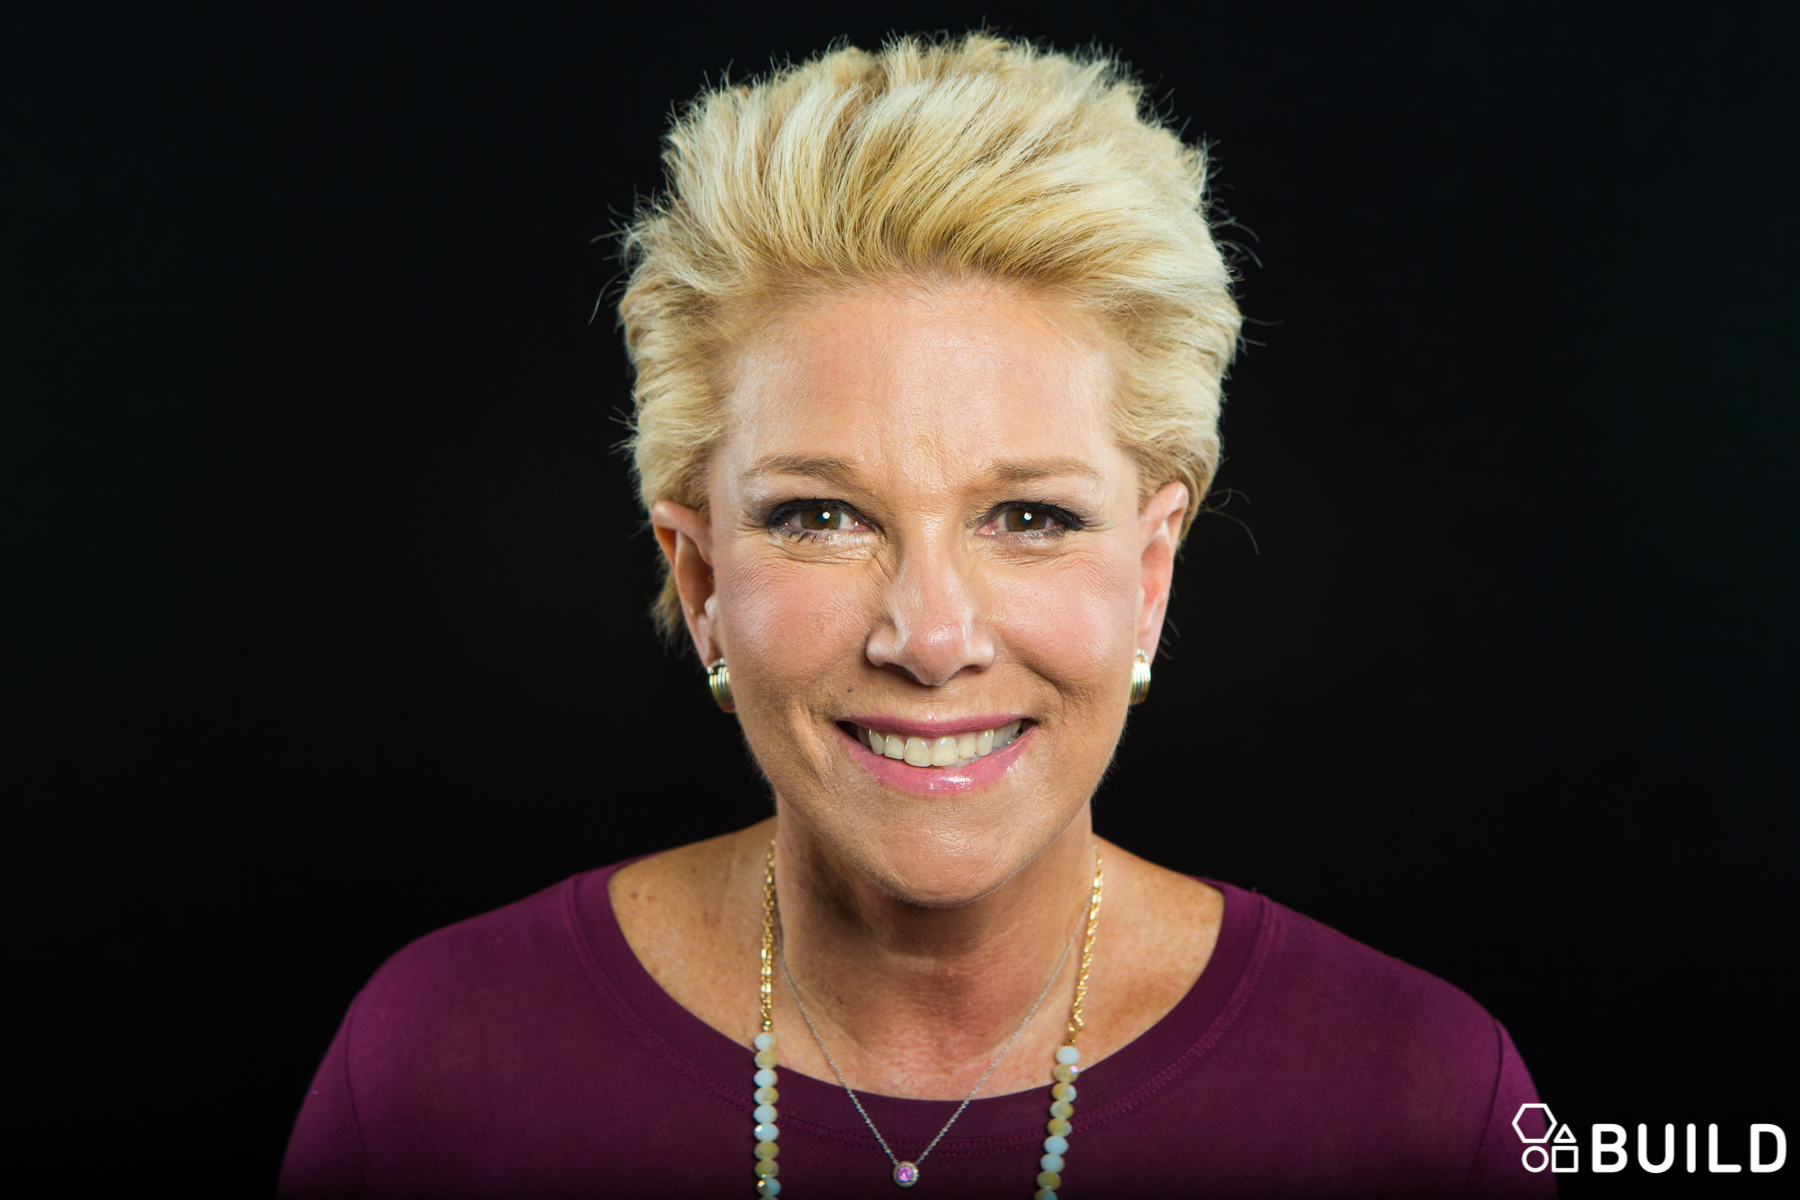 short hair, don't care: joan lunden is chic, cheerful and cancer